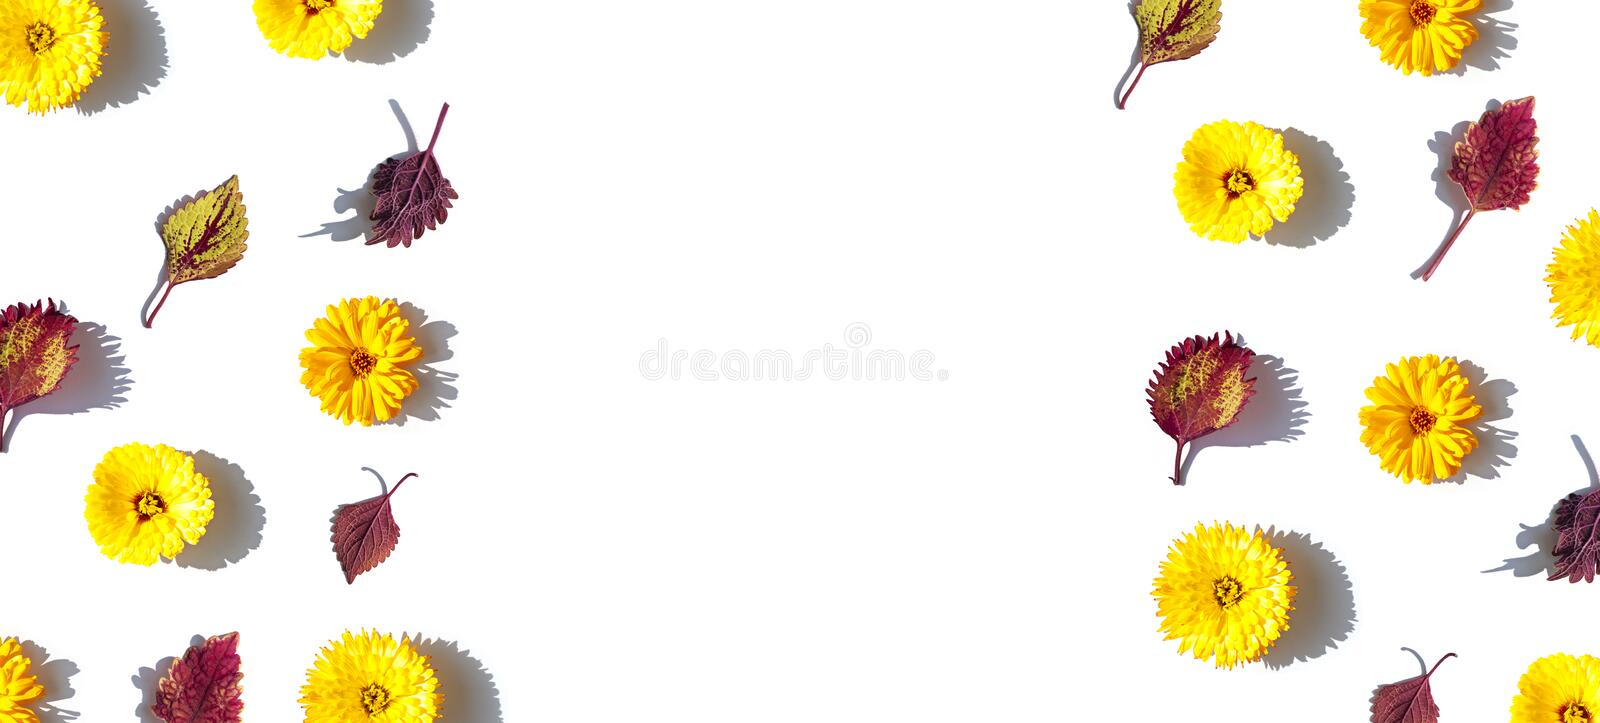 Yellow calendula flowers and autumn leaves concept frame on the bright sunny background. Top view banner template. stock image